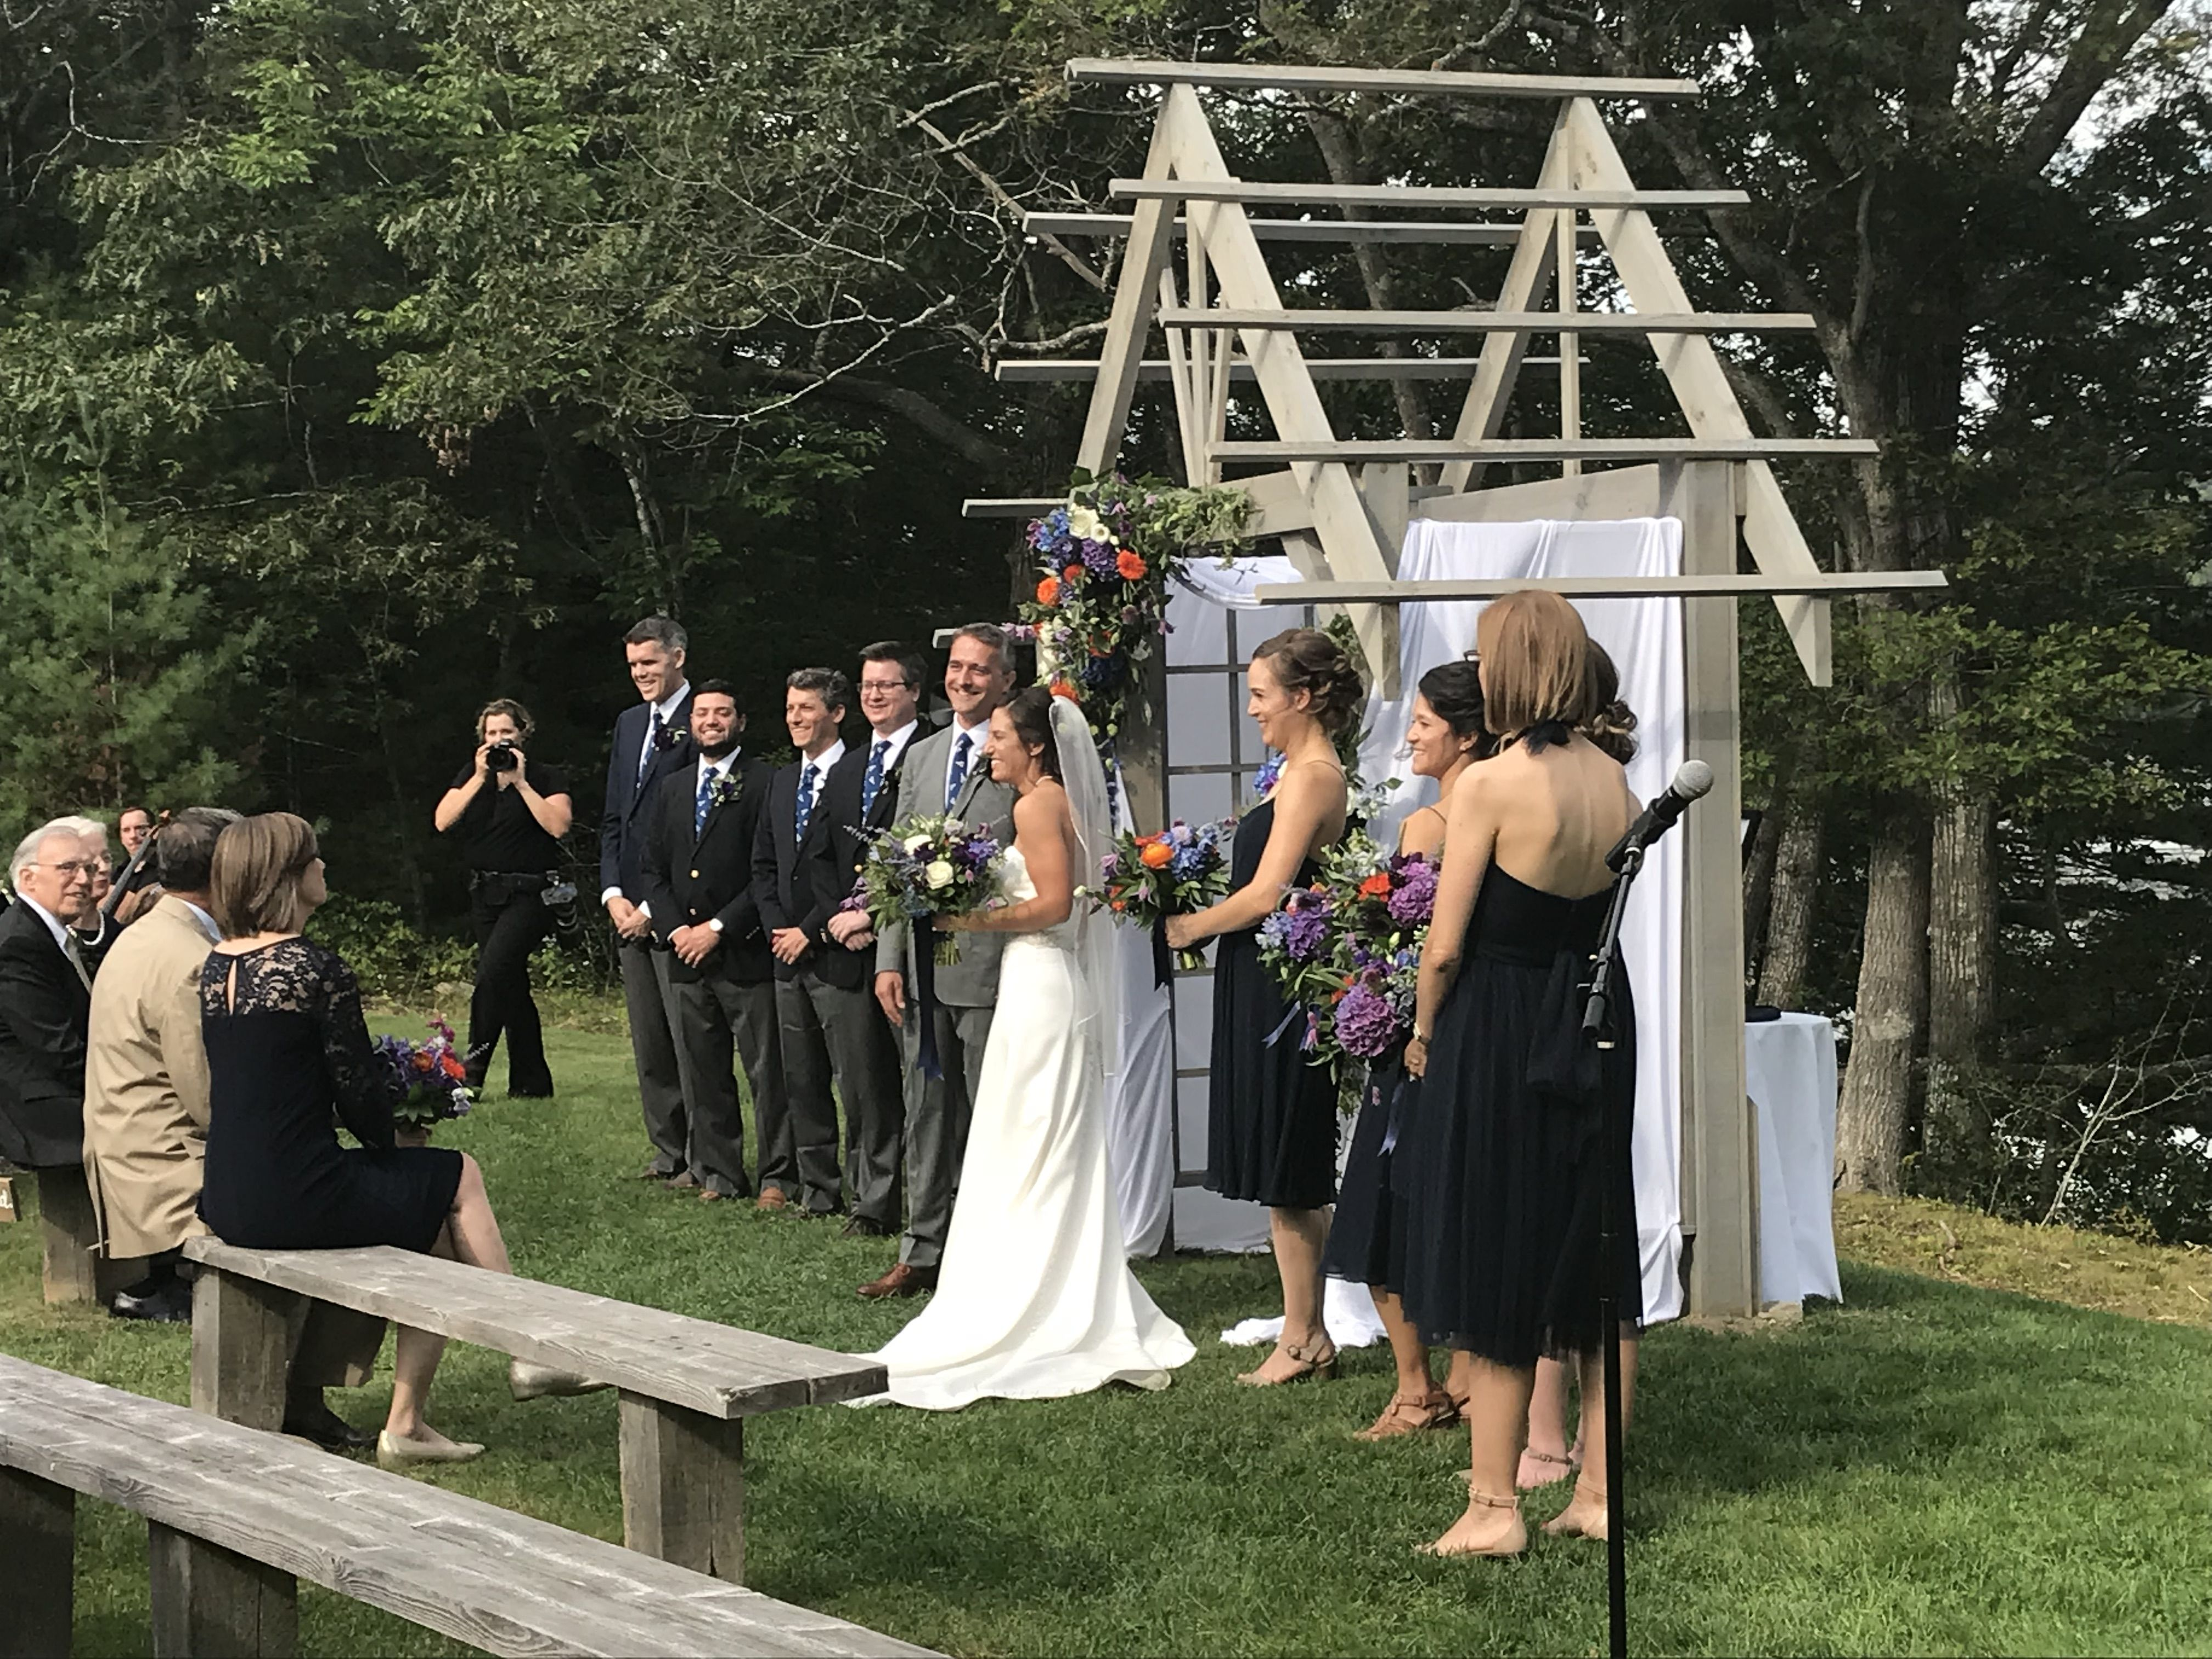 The Wedding Ceremony And Reception Of Elizabeth Inkellis And Christopher Langhammer Were Held At Marianmade Farm In W Maine Wedding Wedding Dj Wedding Ceremony